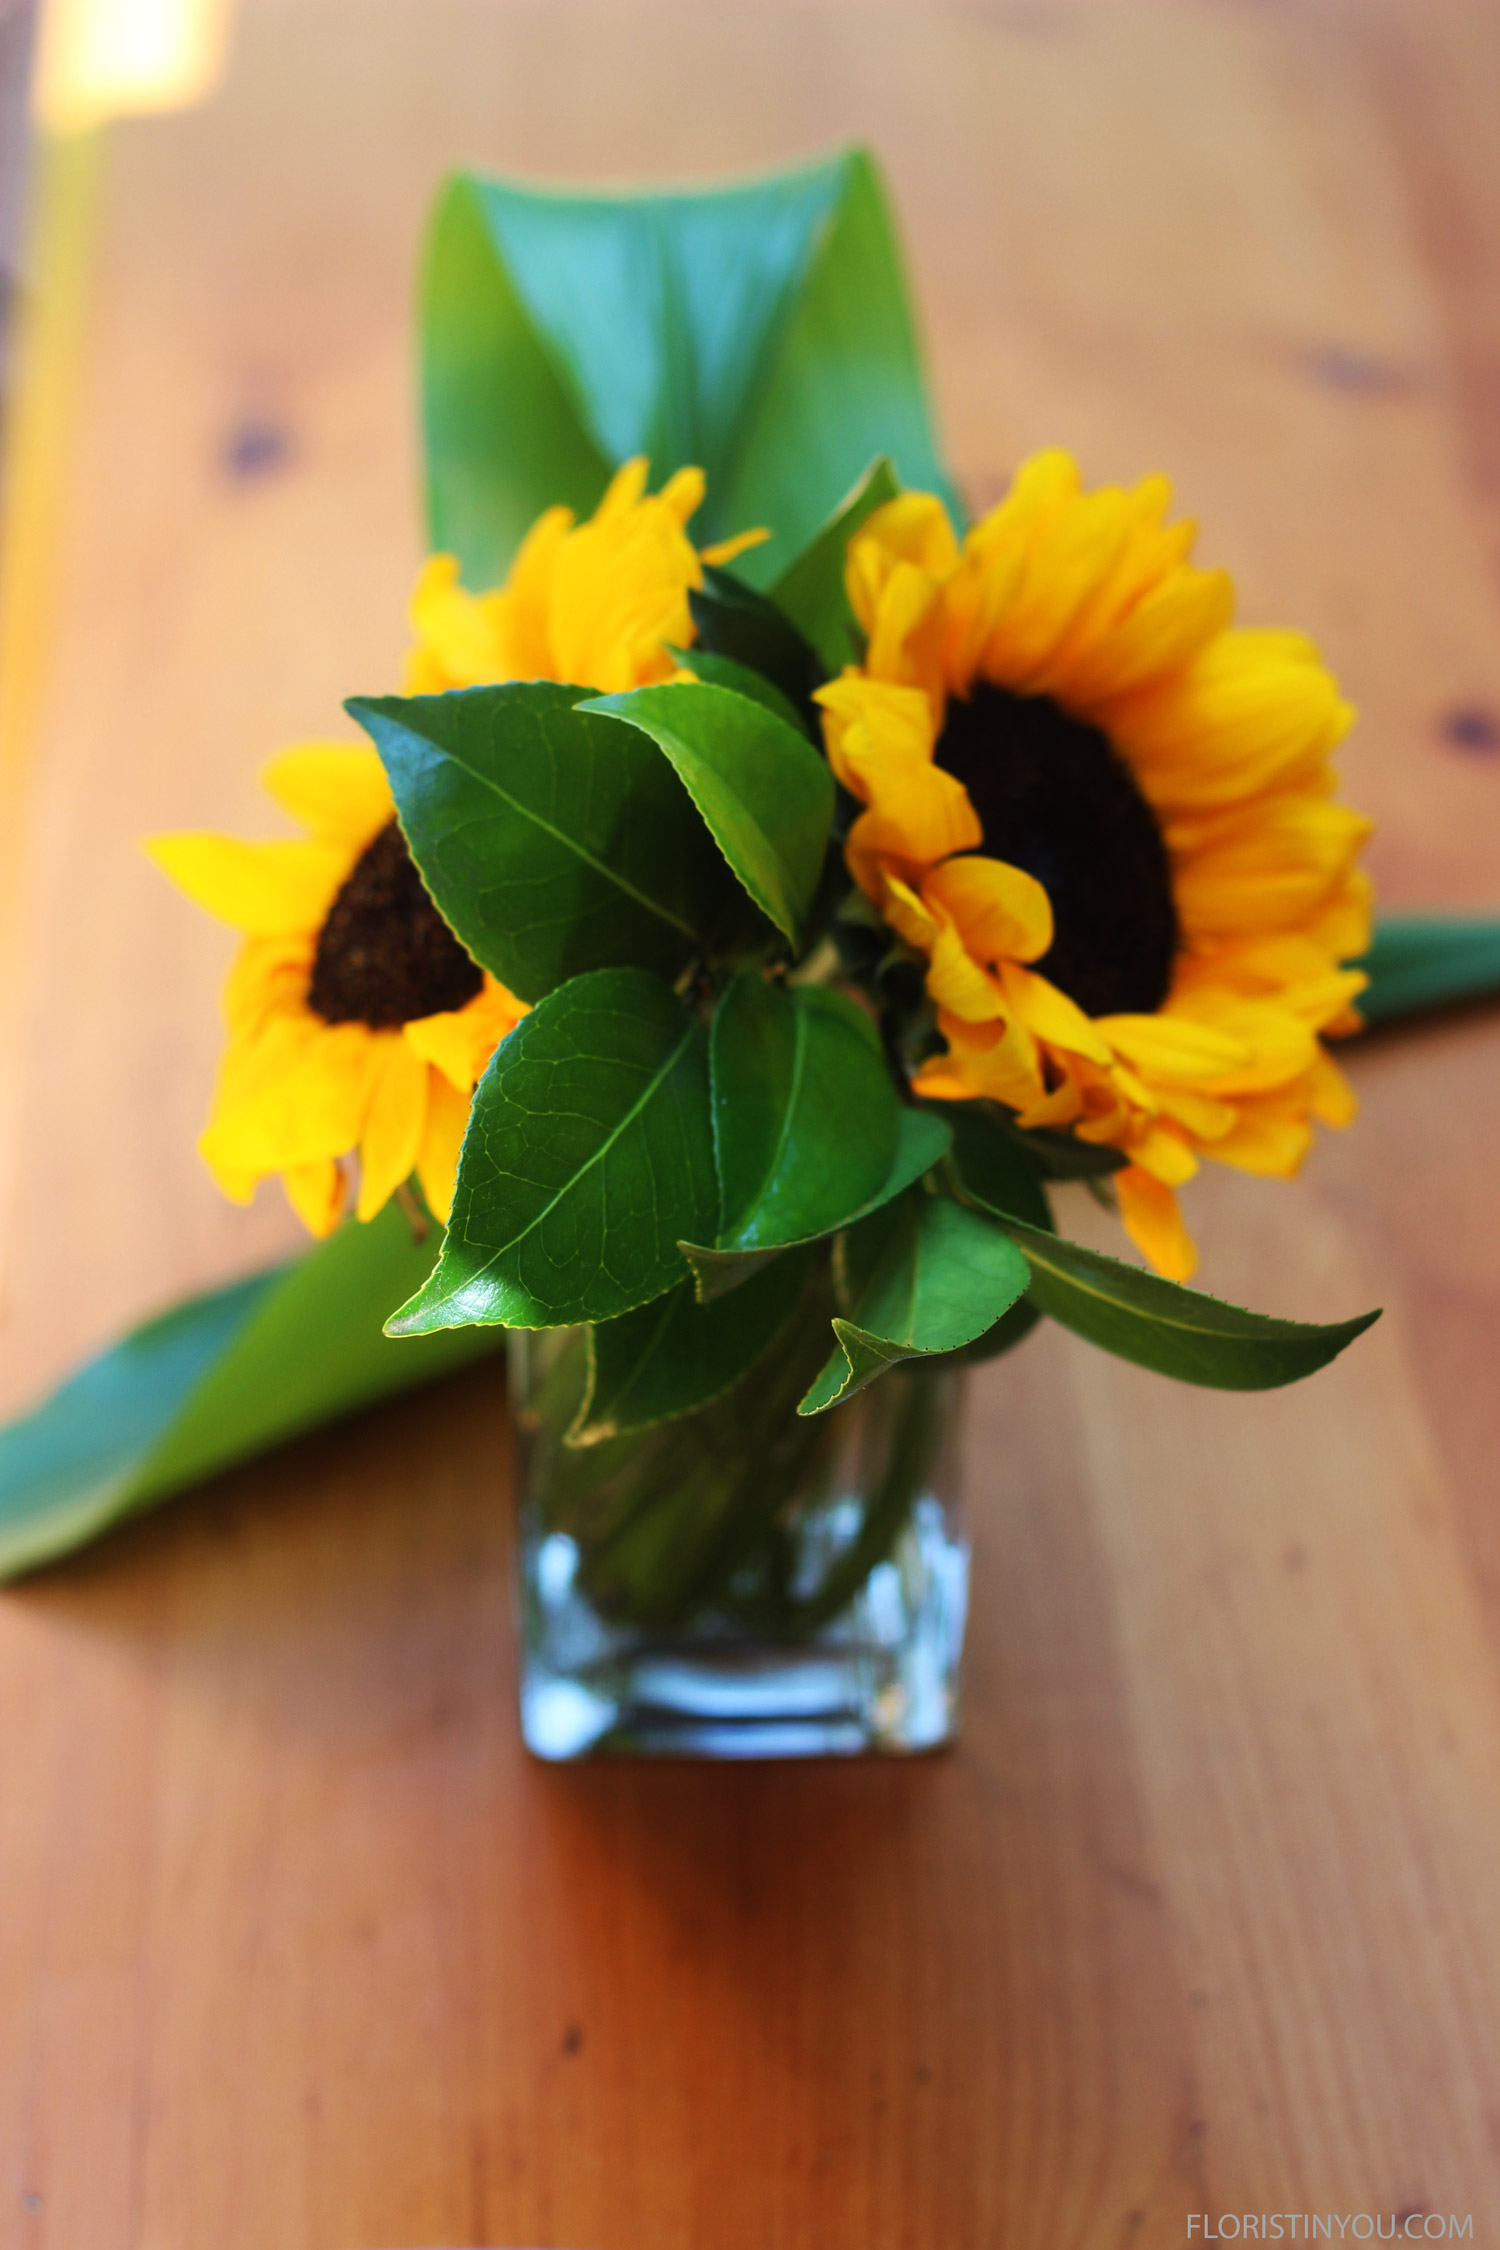 Add a Sunflower to the back.